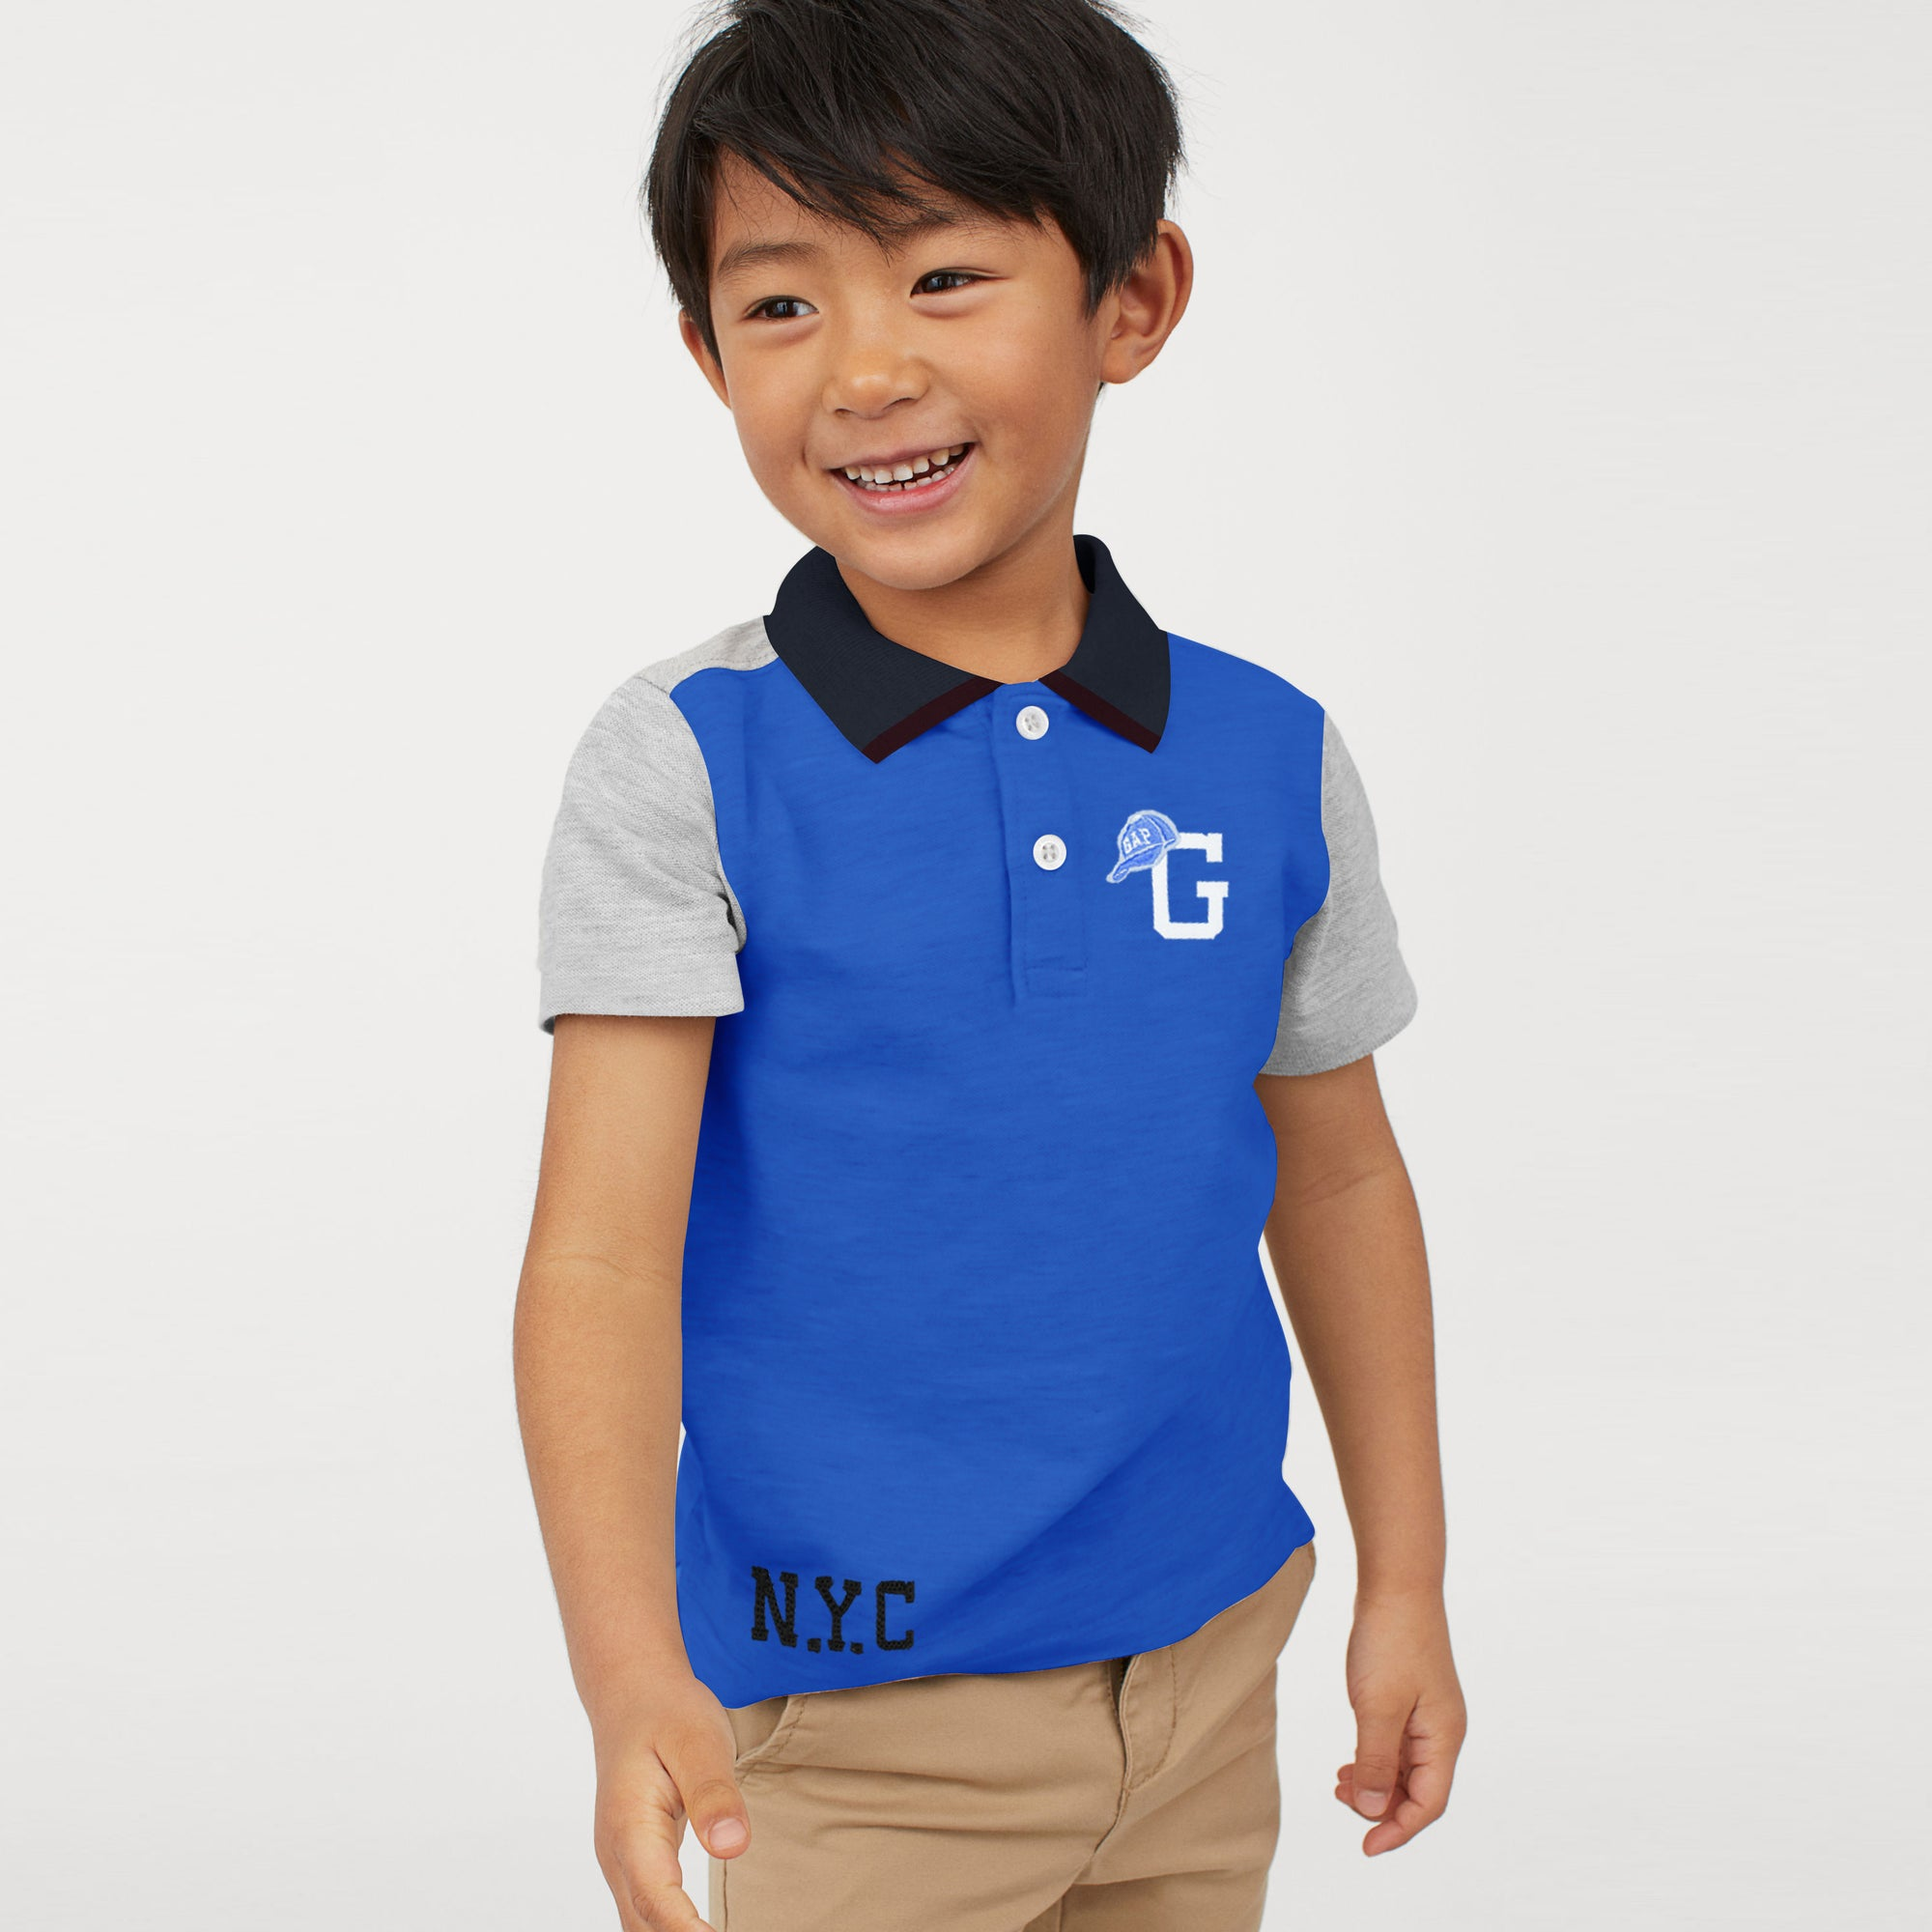 brandsego - GAP Half Sleeve P.Q Polo Shirt For Kids-BE8528